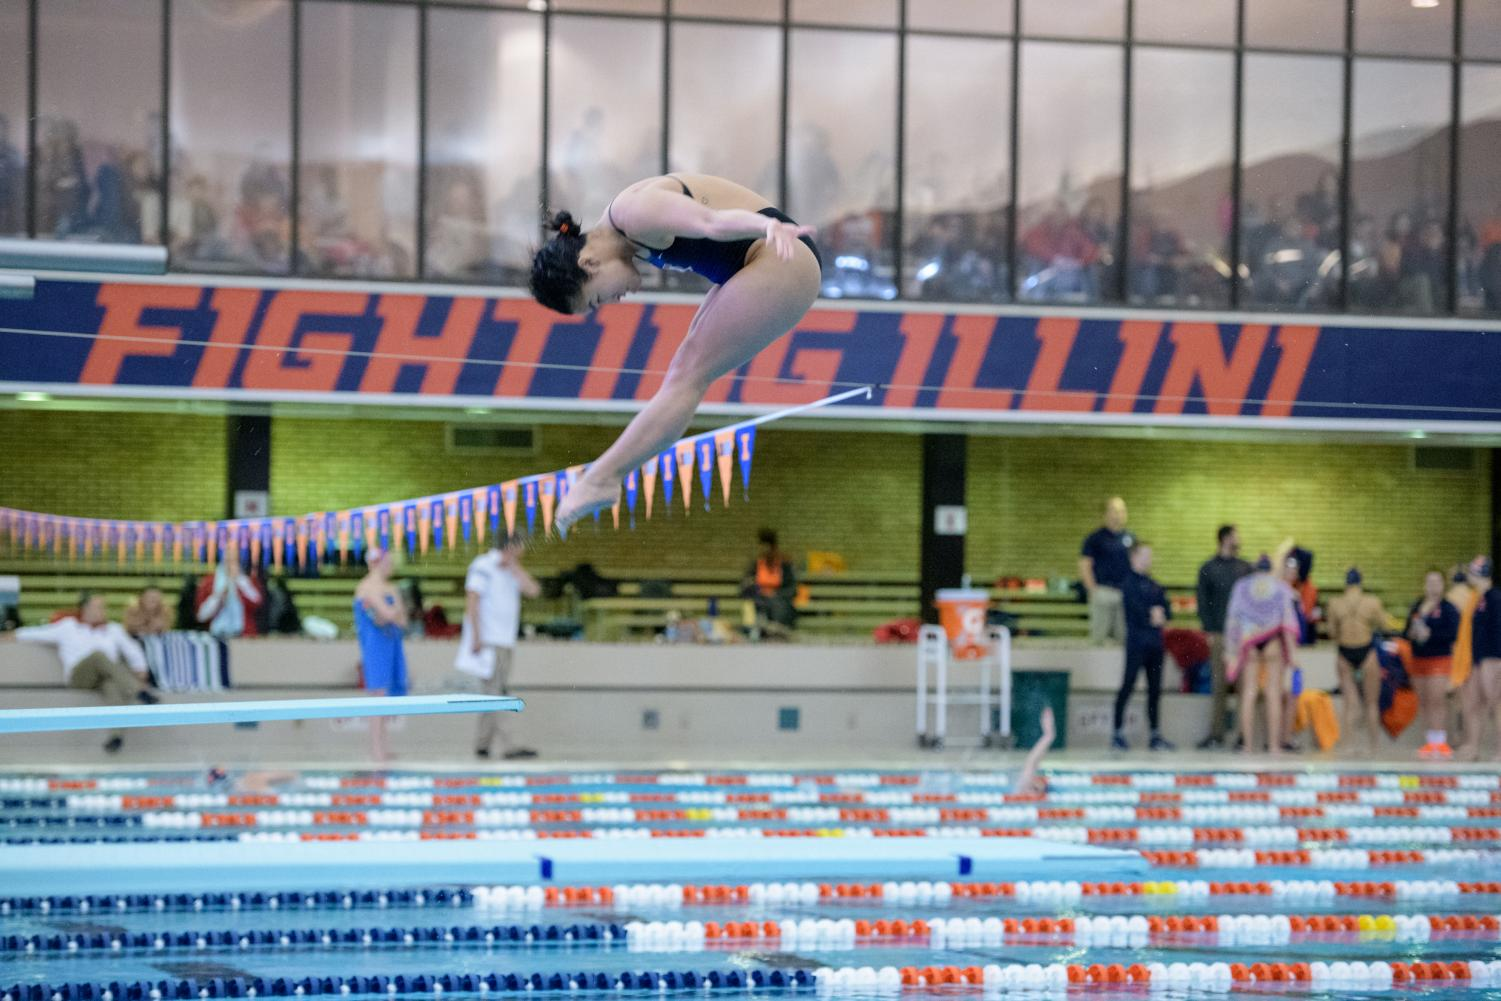 Ling Kuhn completes a dive against Nebraska on Jan. 26. The Illini fell 174-126 to the Cornhuskers.